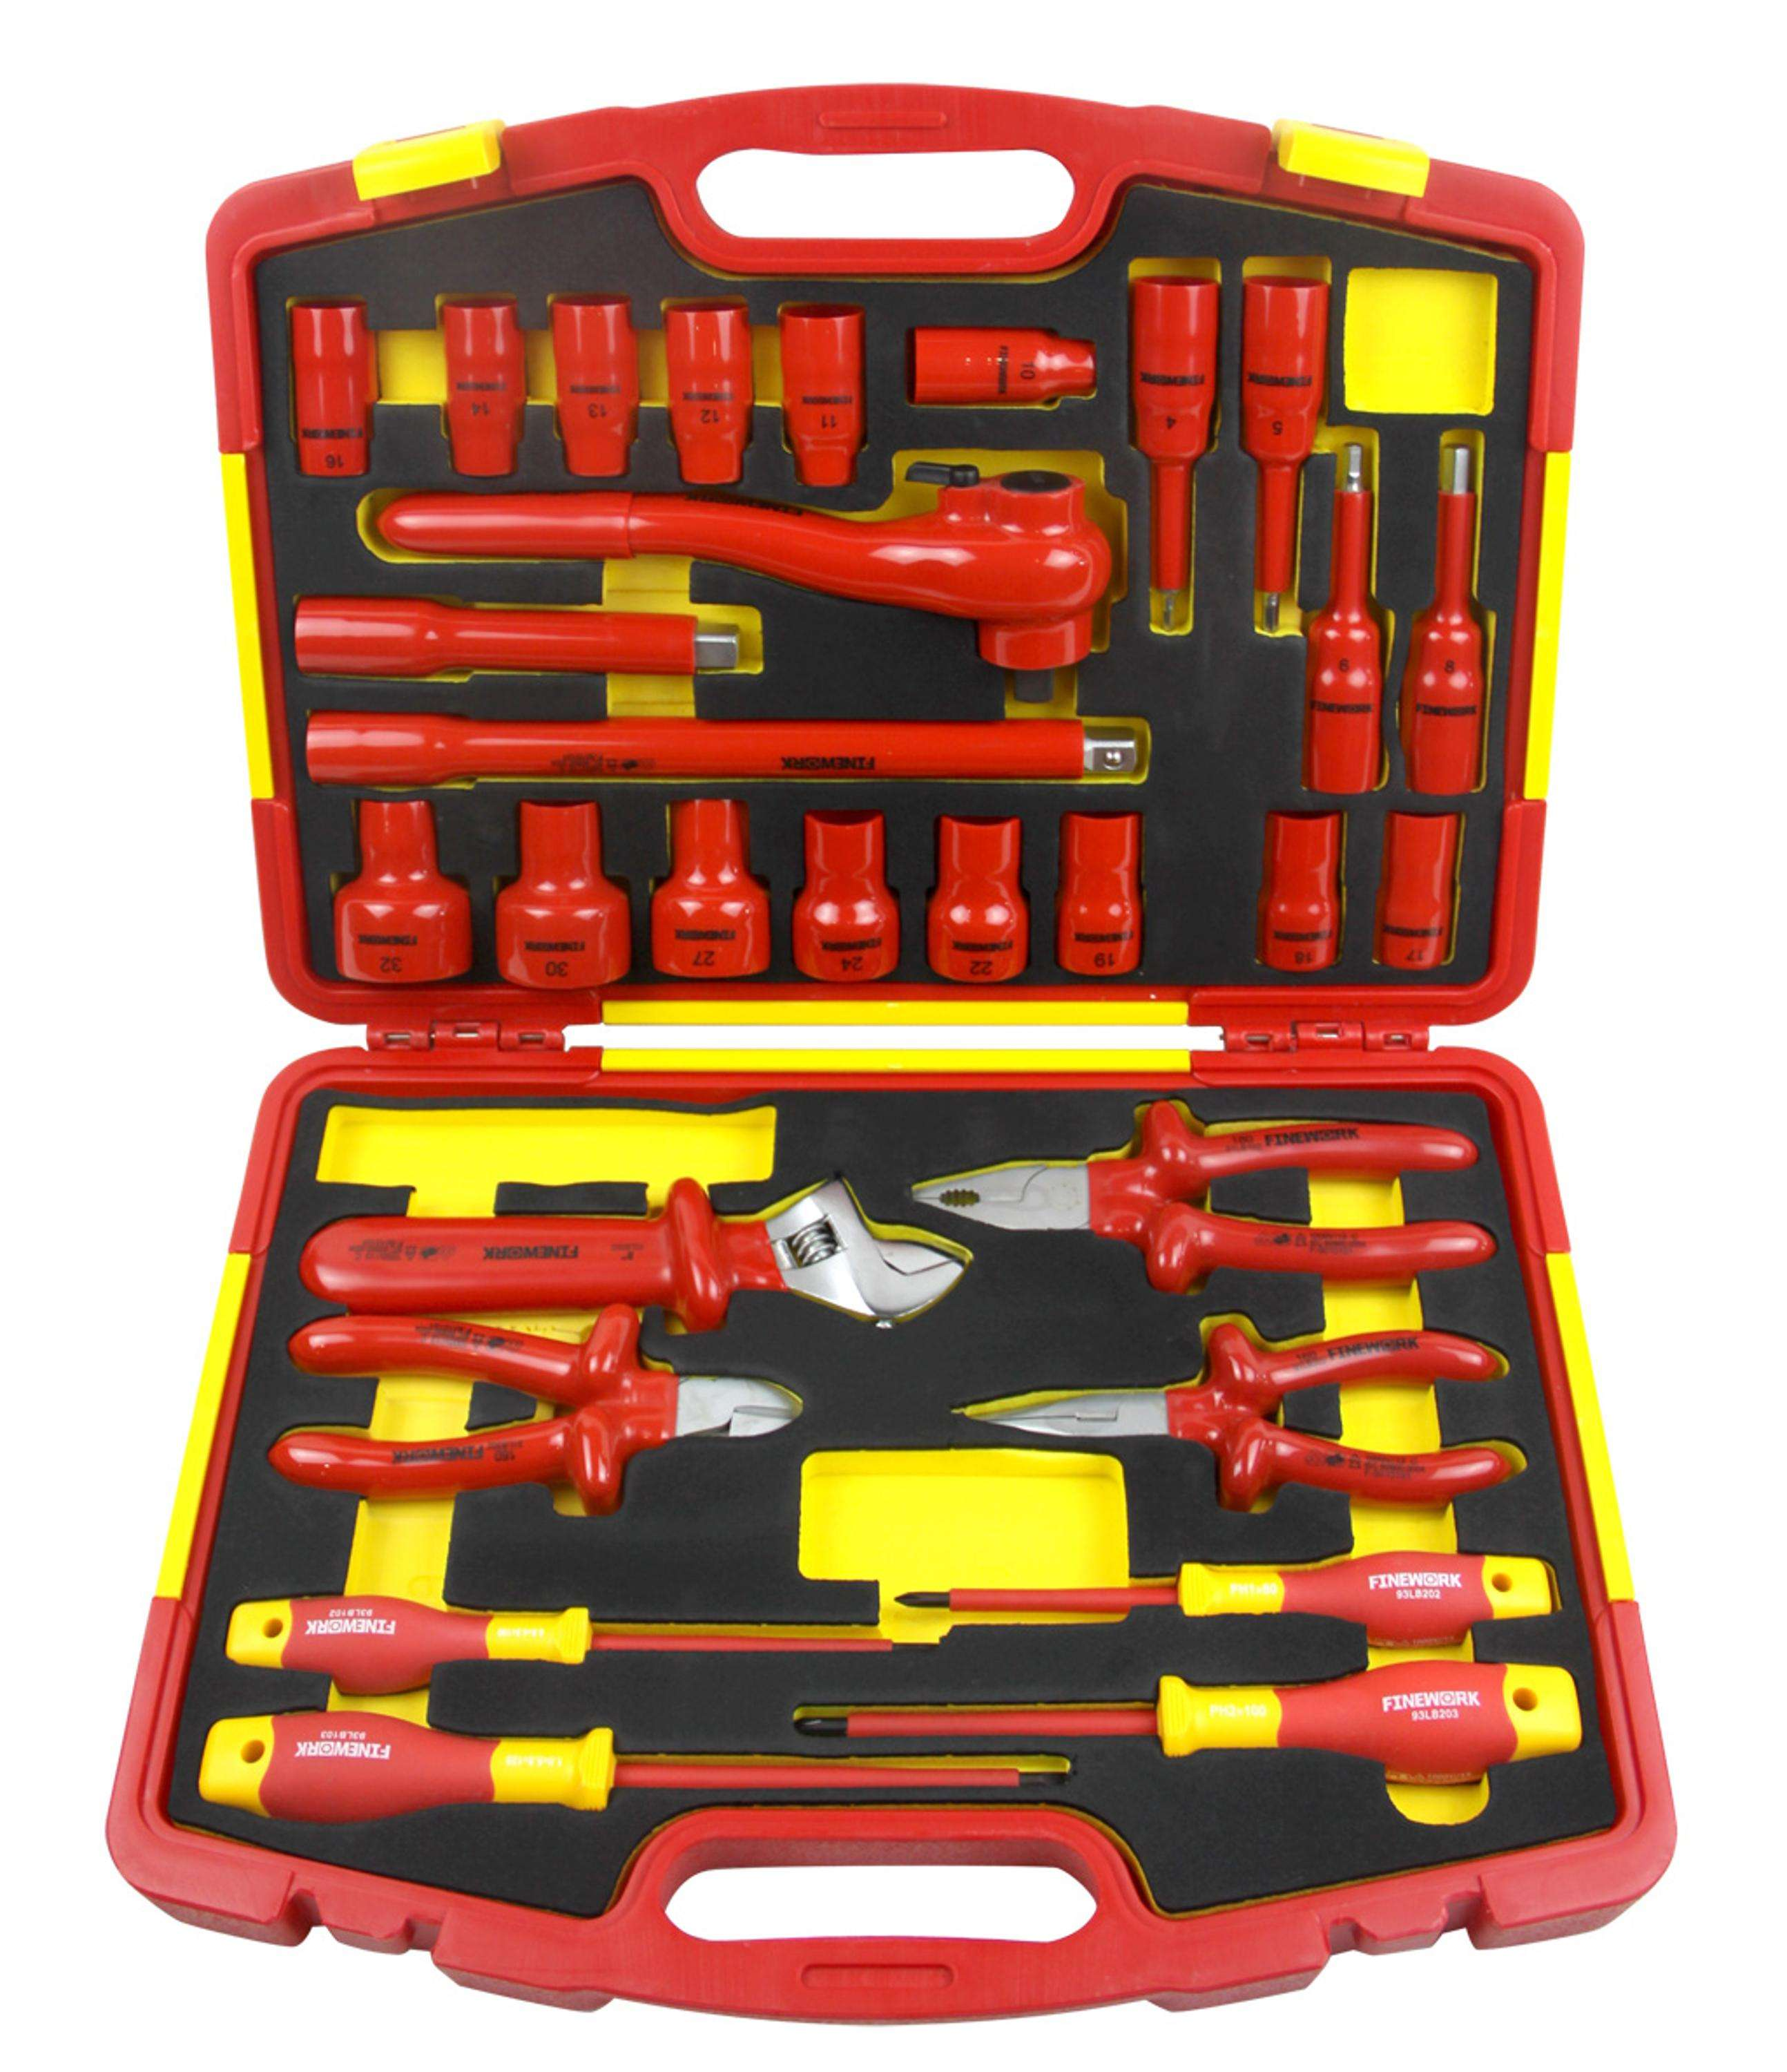 29PCS 1000V VDE Insulated Electric Hand Tool Box Set